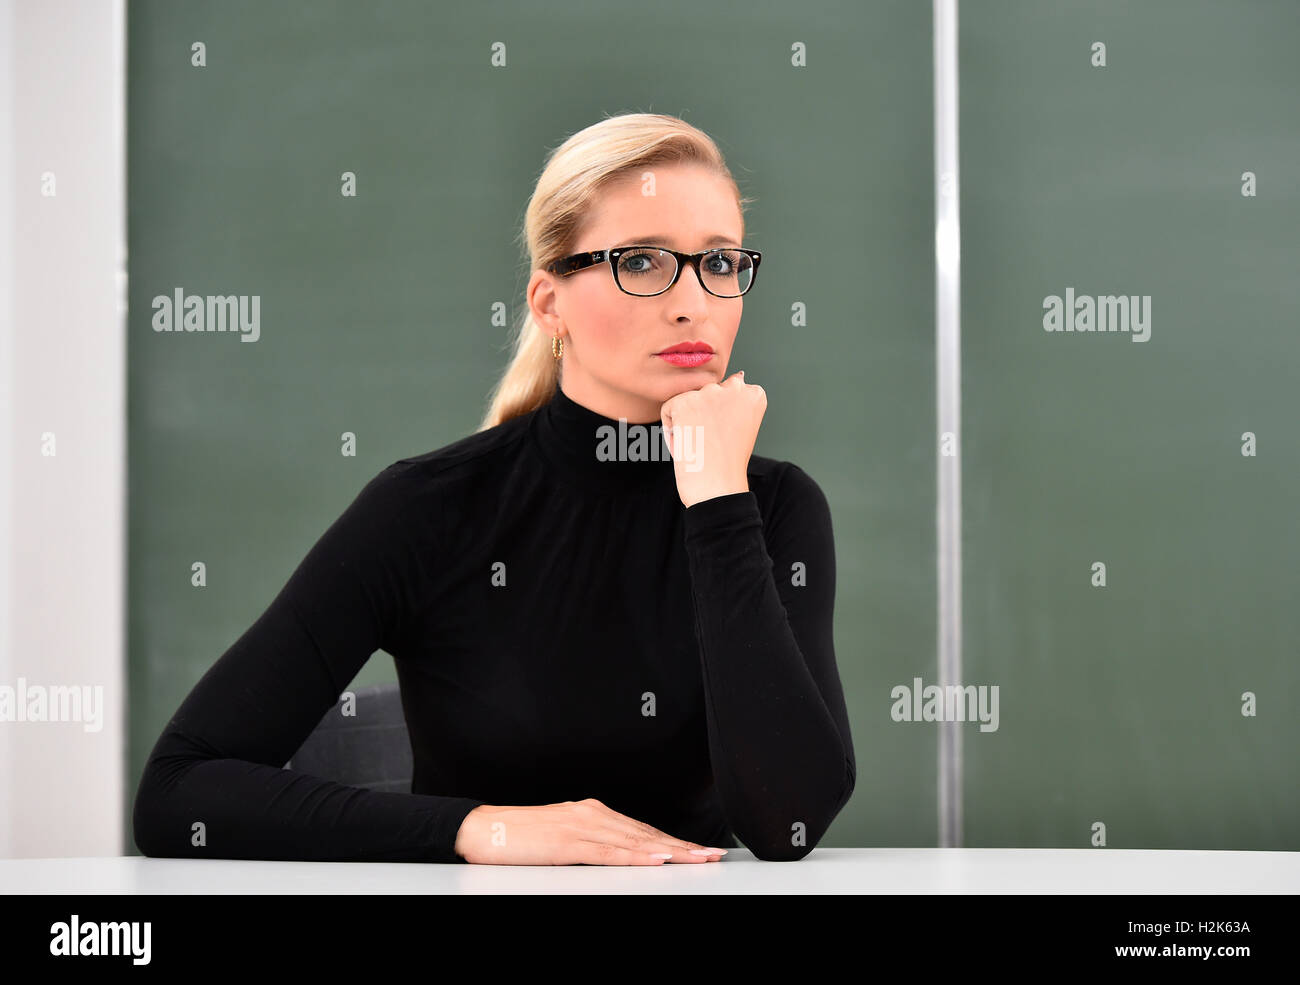 Stressed, thoughtful teacher, tutor, trainer, in front of a blackboard - Stock Image